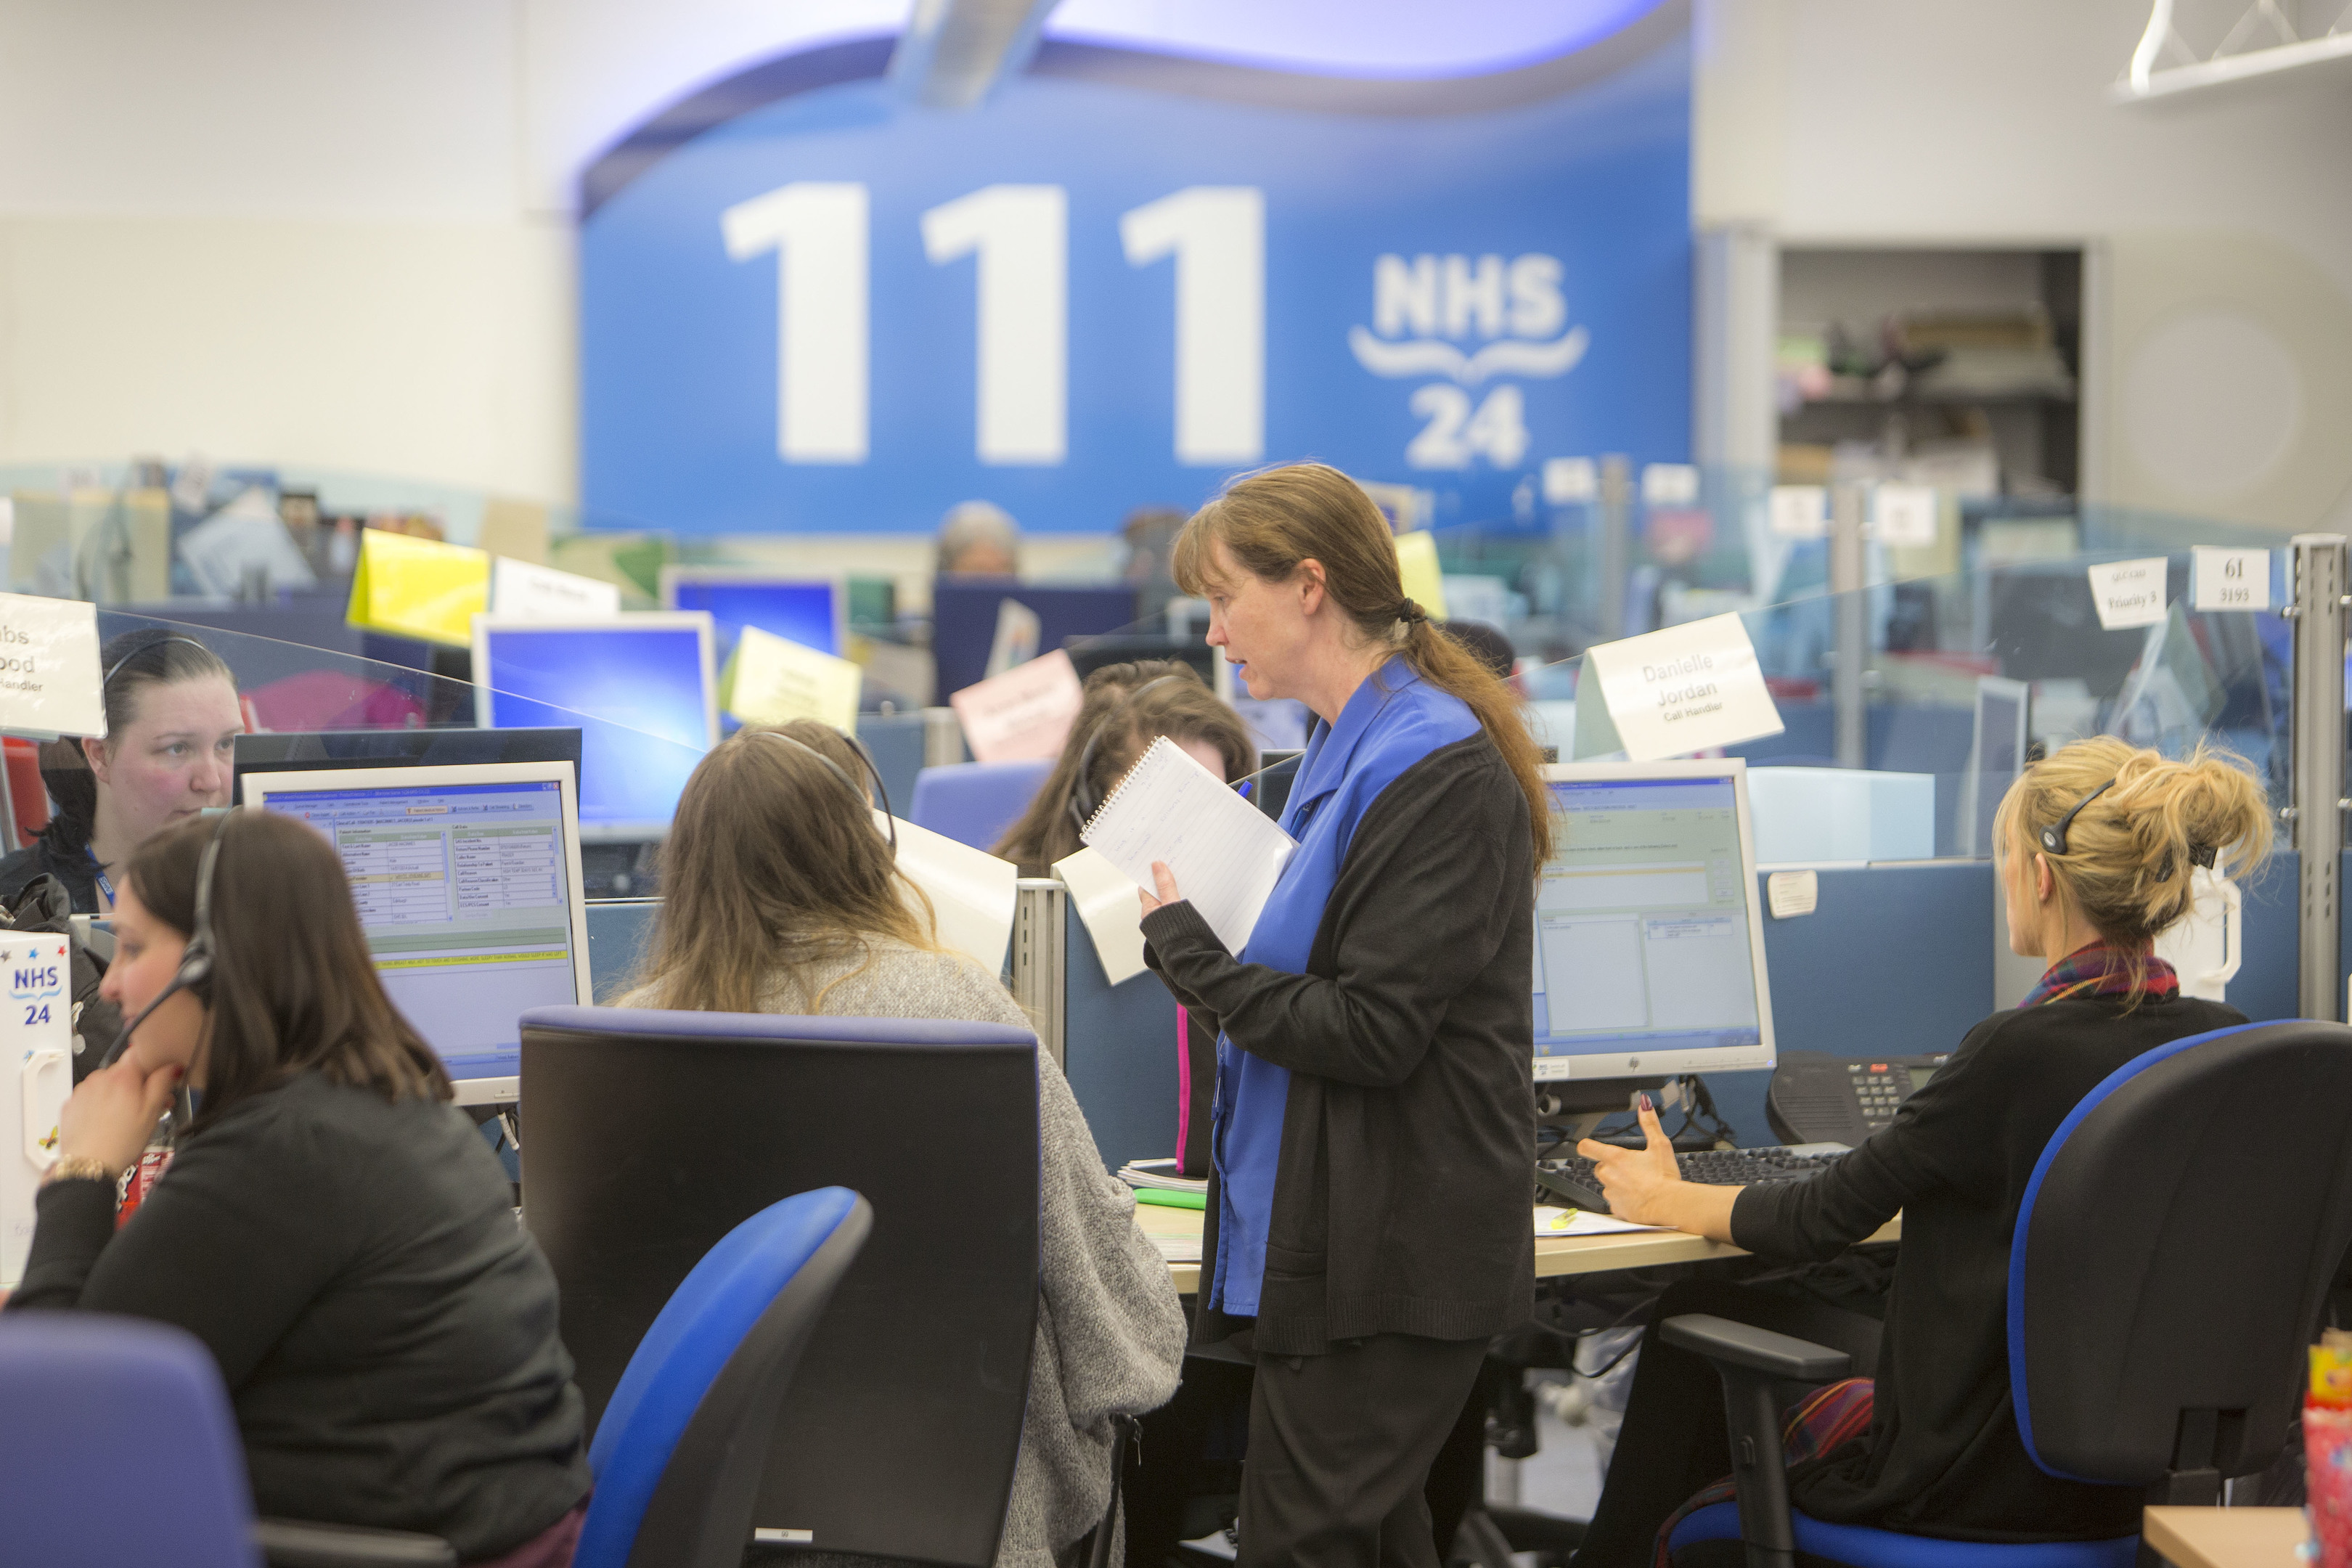 NHS 24 Call Centre, Clydebank